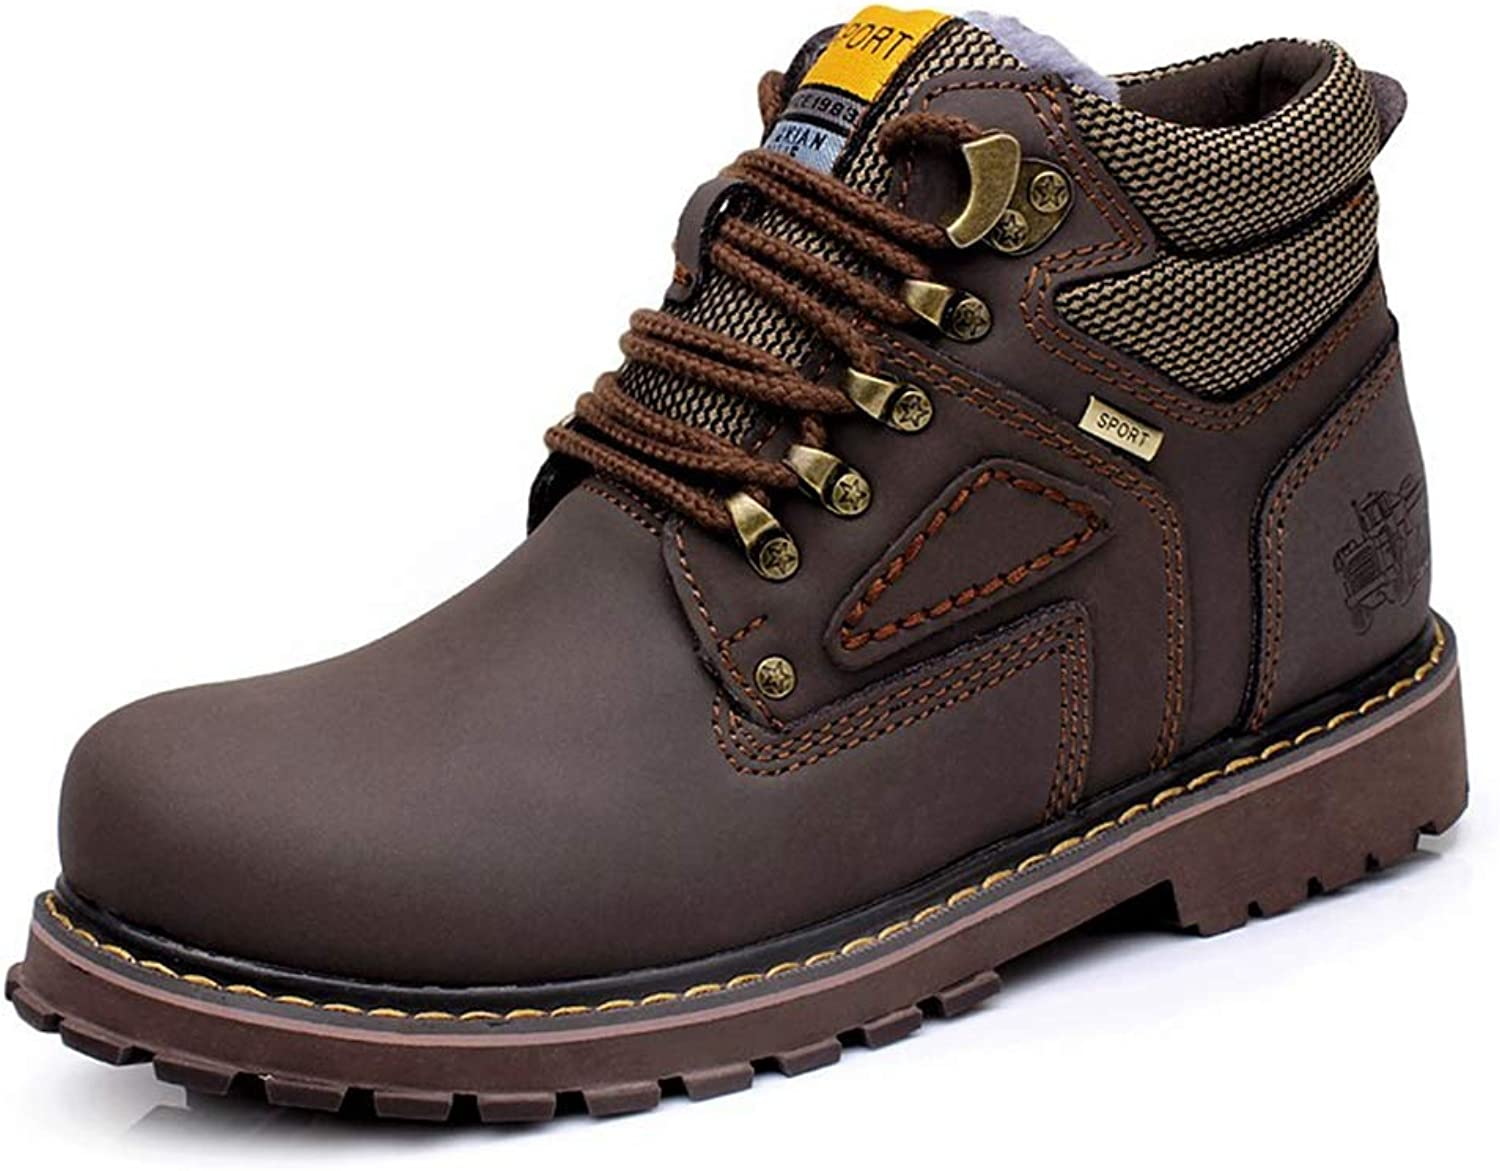 Phil Betty Mens Martin Boots Autumn Winter Warm Round Toe Lace-Up Outdoor Non-Slip Booties